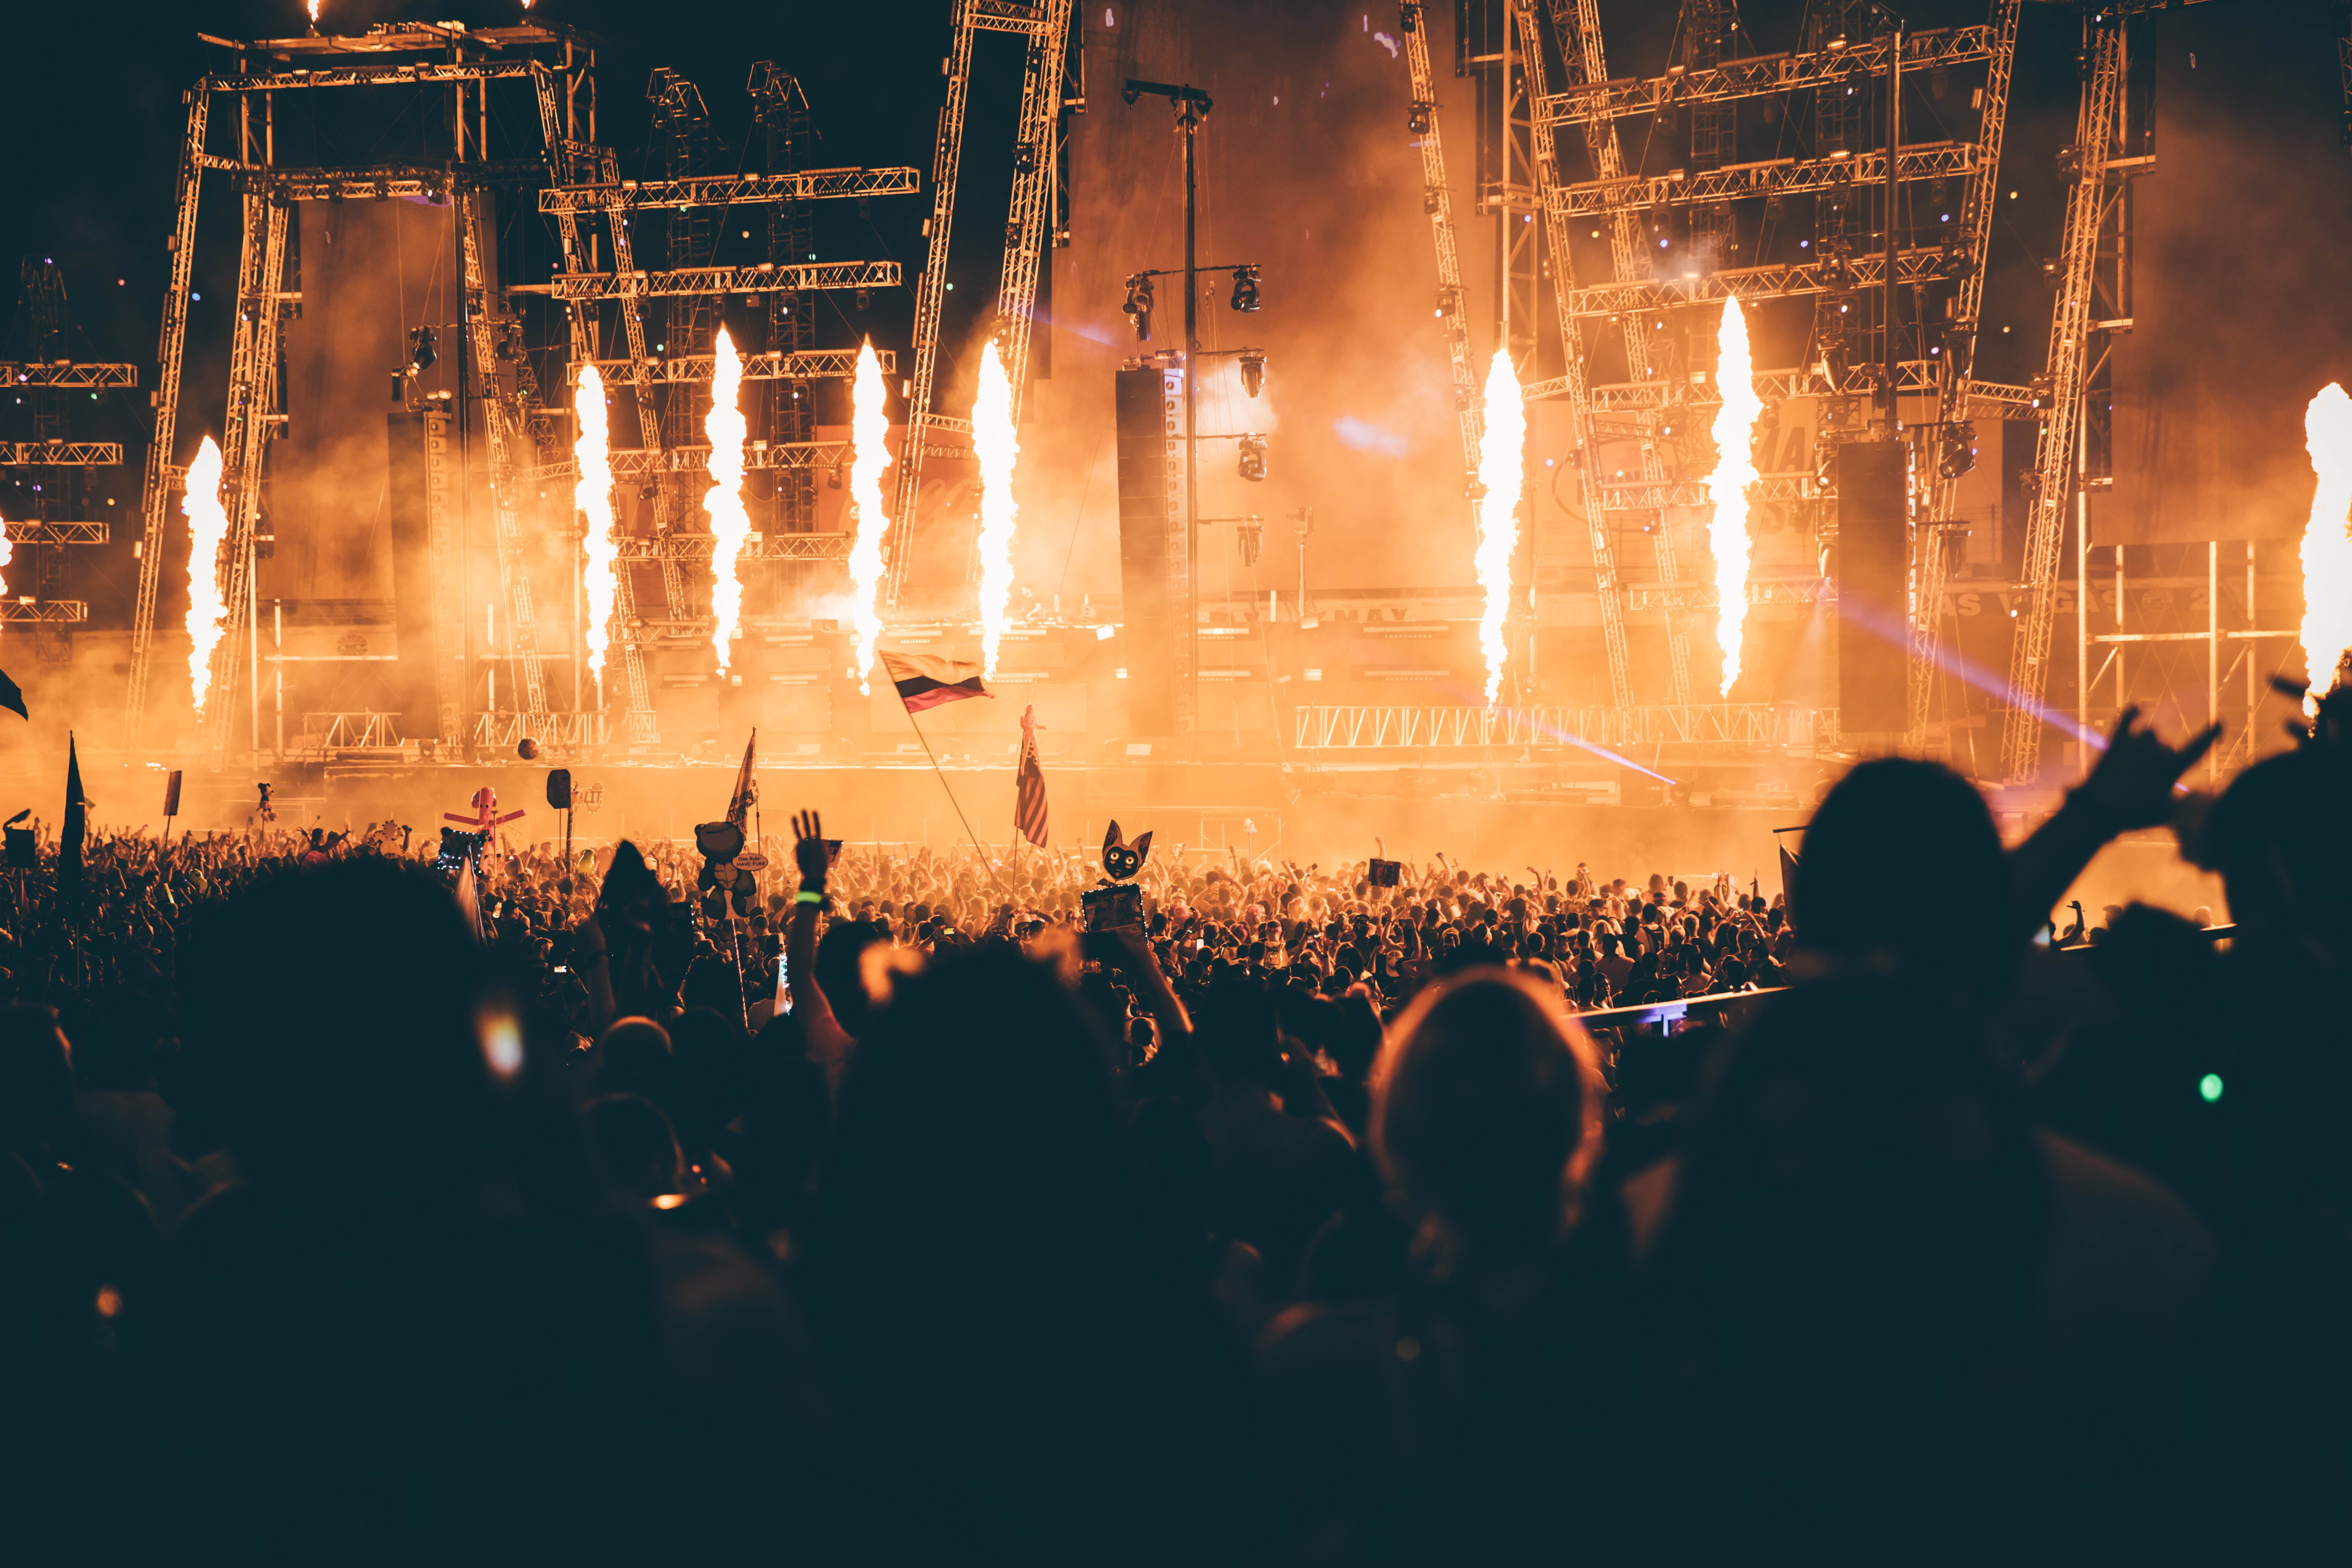 A crowd of people enjoying a concert with columns of flame on the stage in Las Vegas